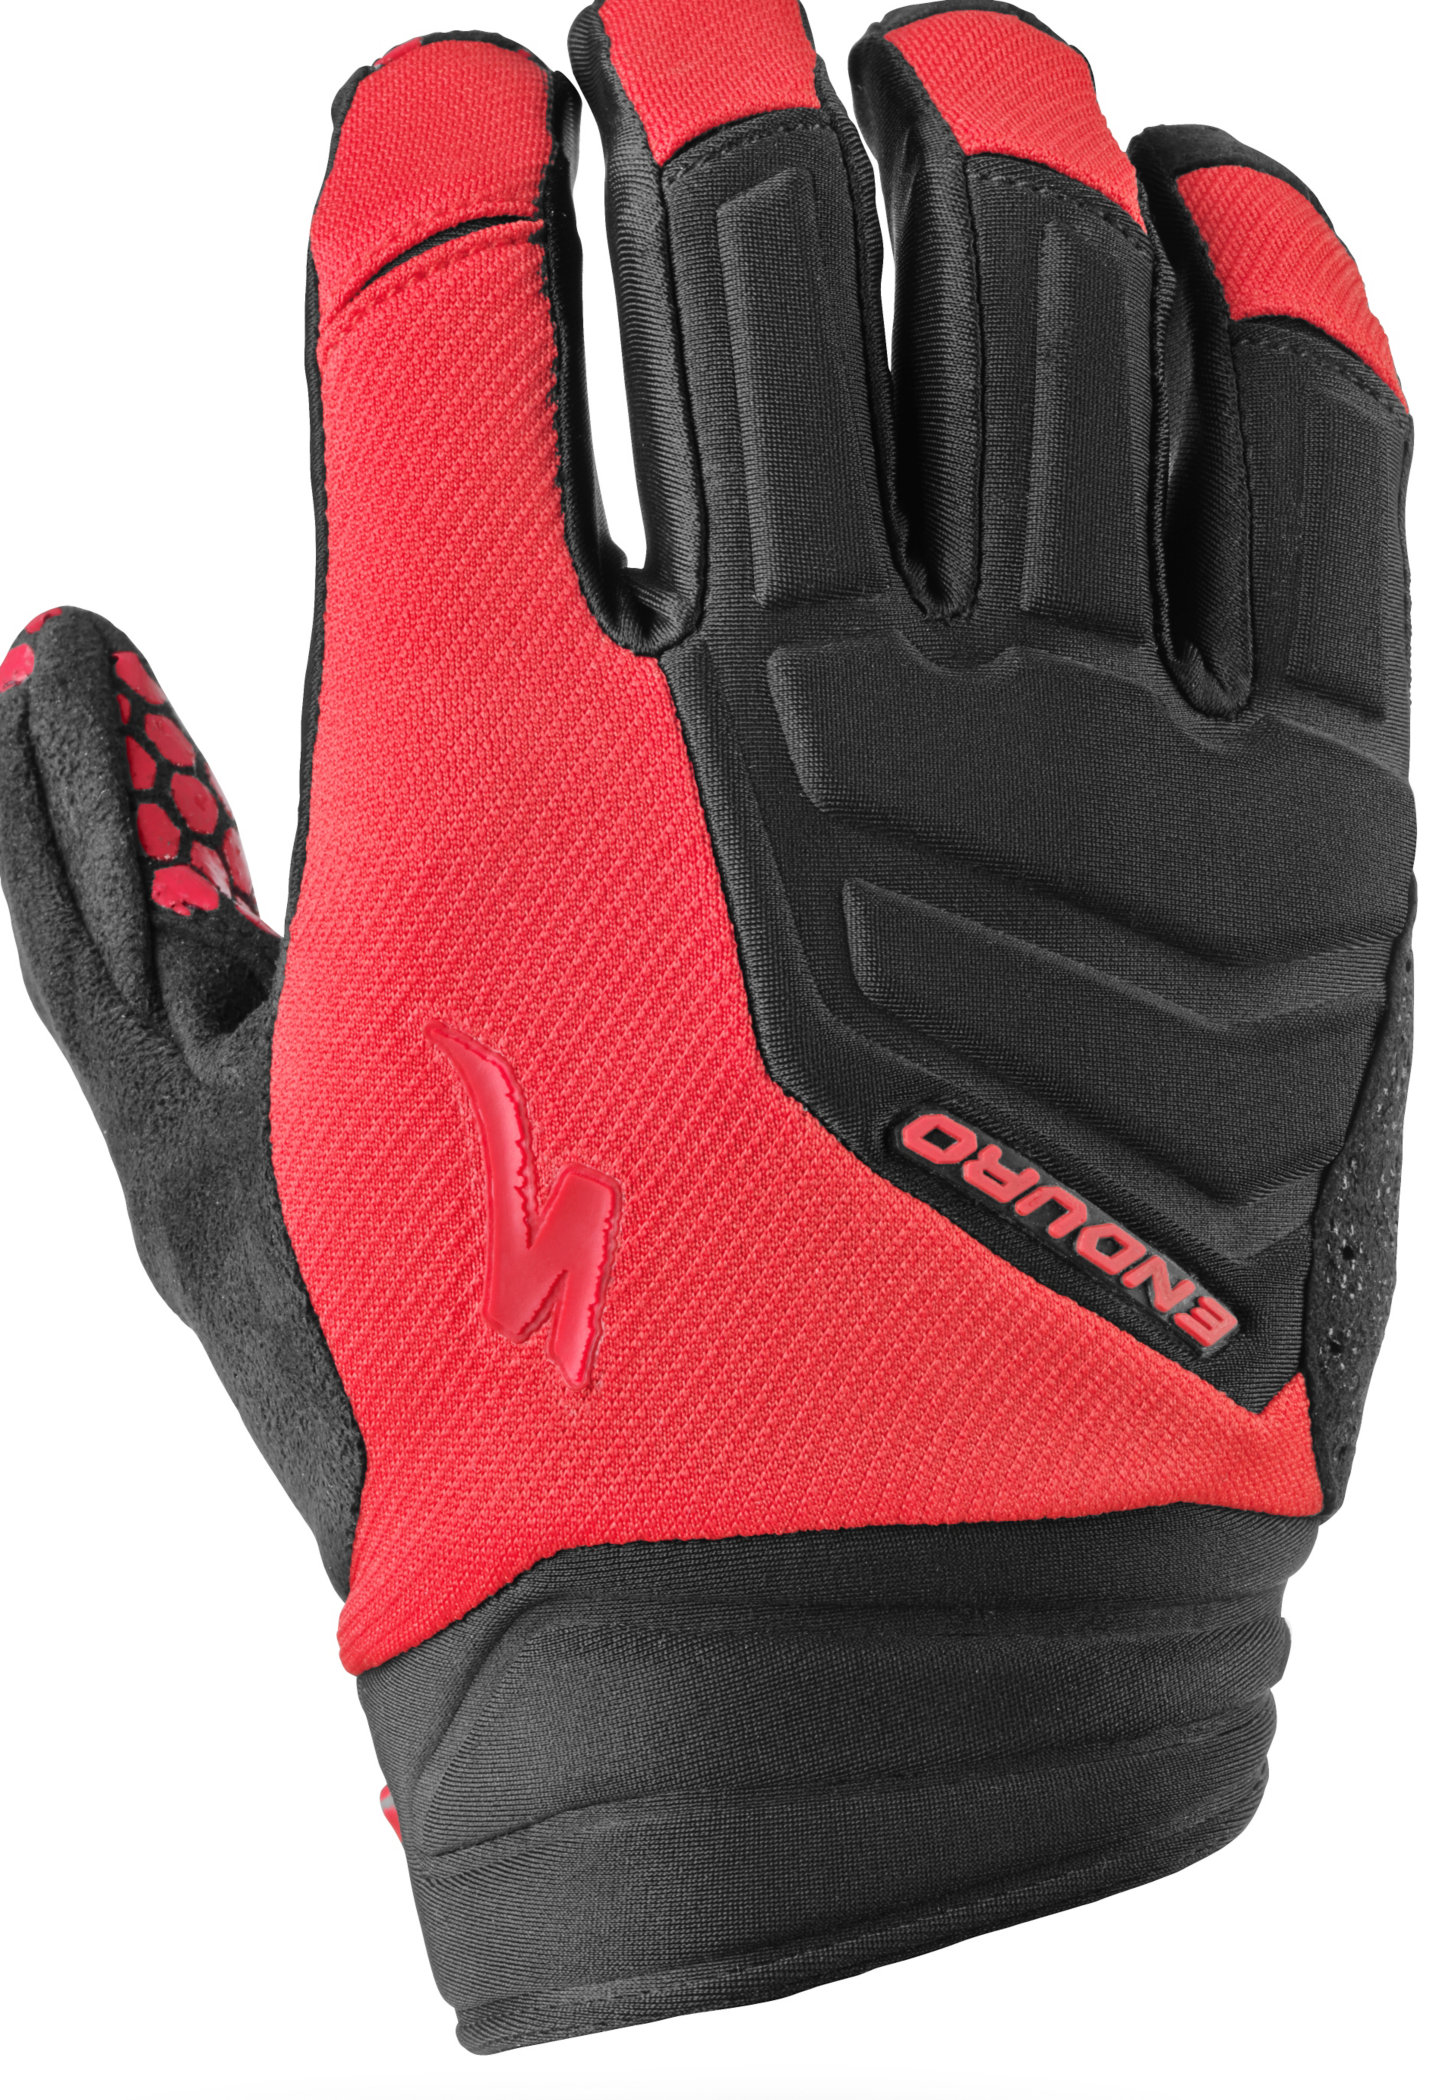 SPECIALIZED ENDURO GLOVE LF RED L - Alpha Bikes